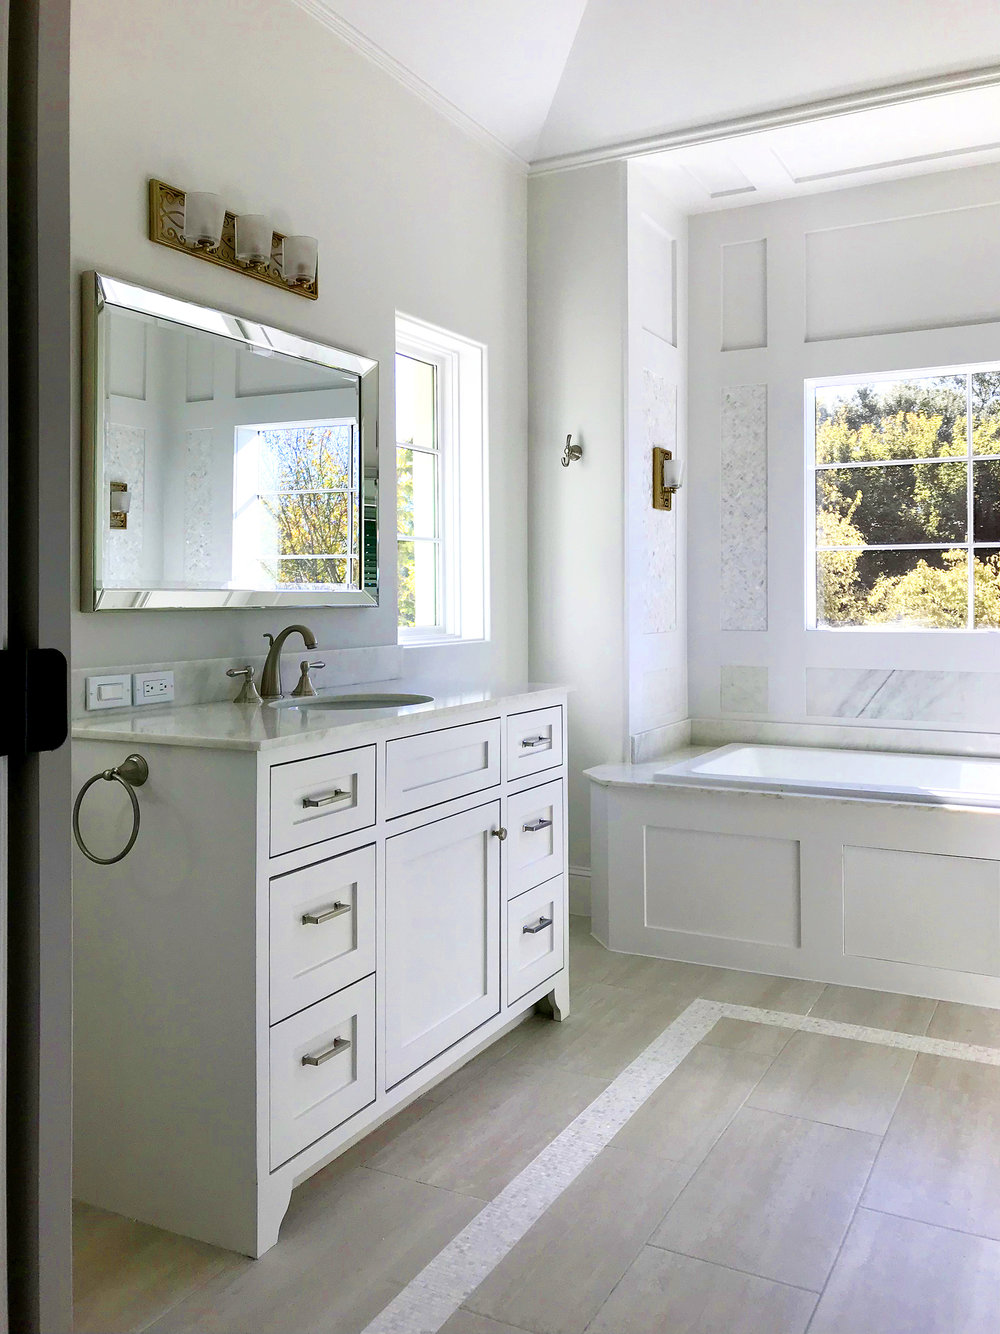 ALBERS CHANG_4210 LAW TOWNHOMES_MASTER BATH_2.jpg